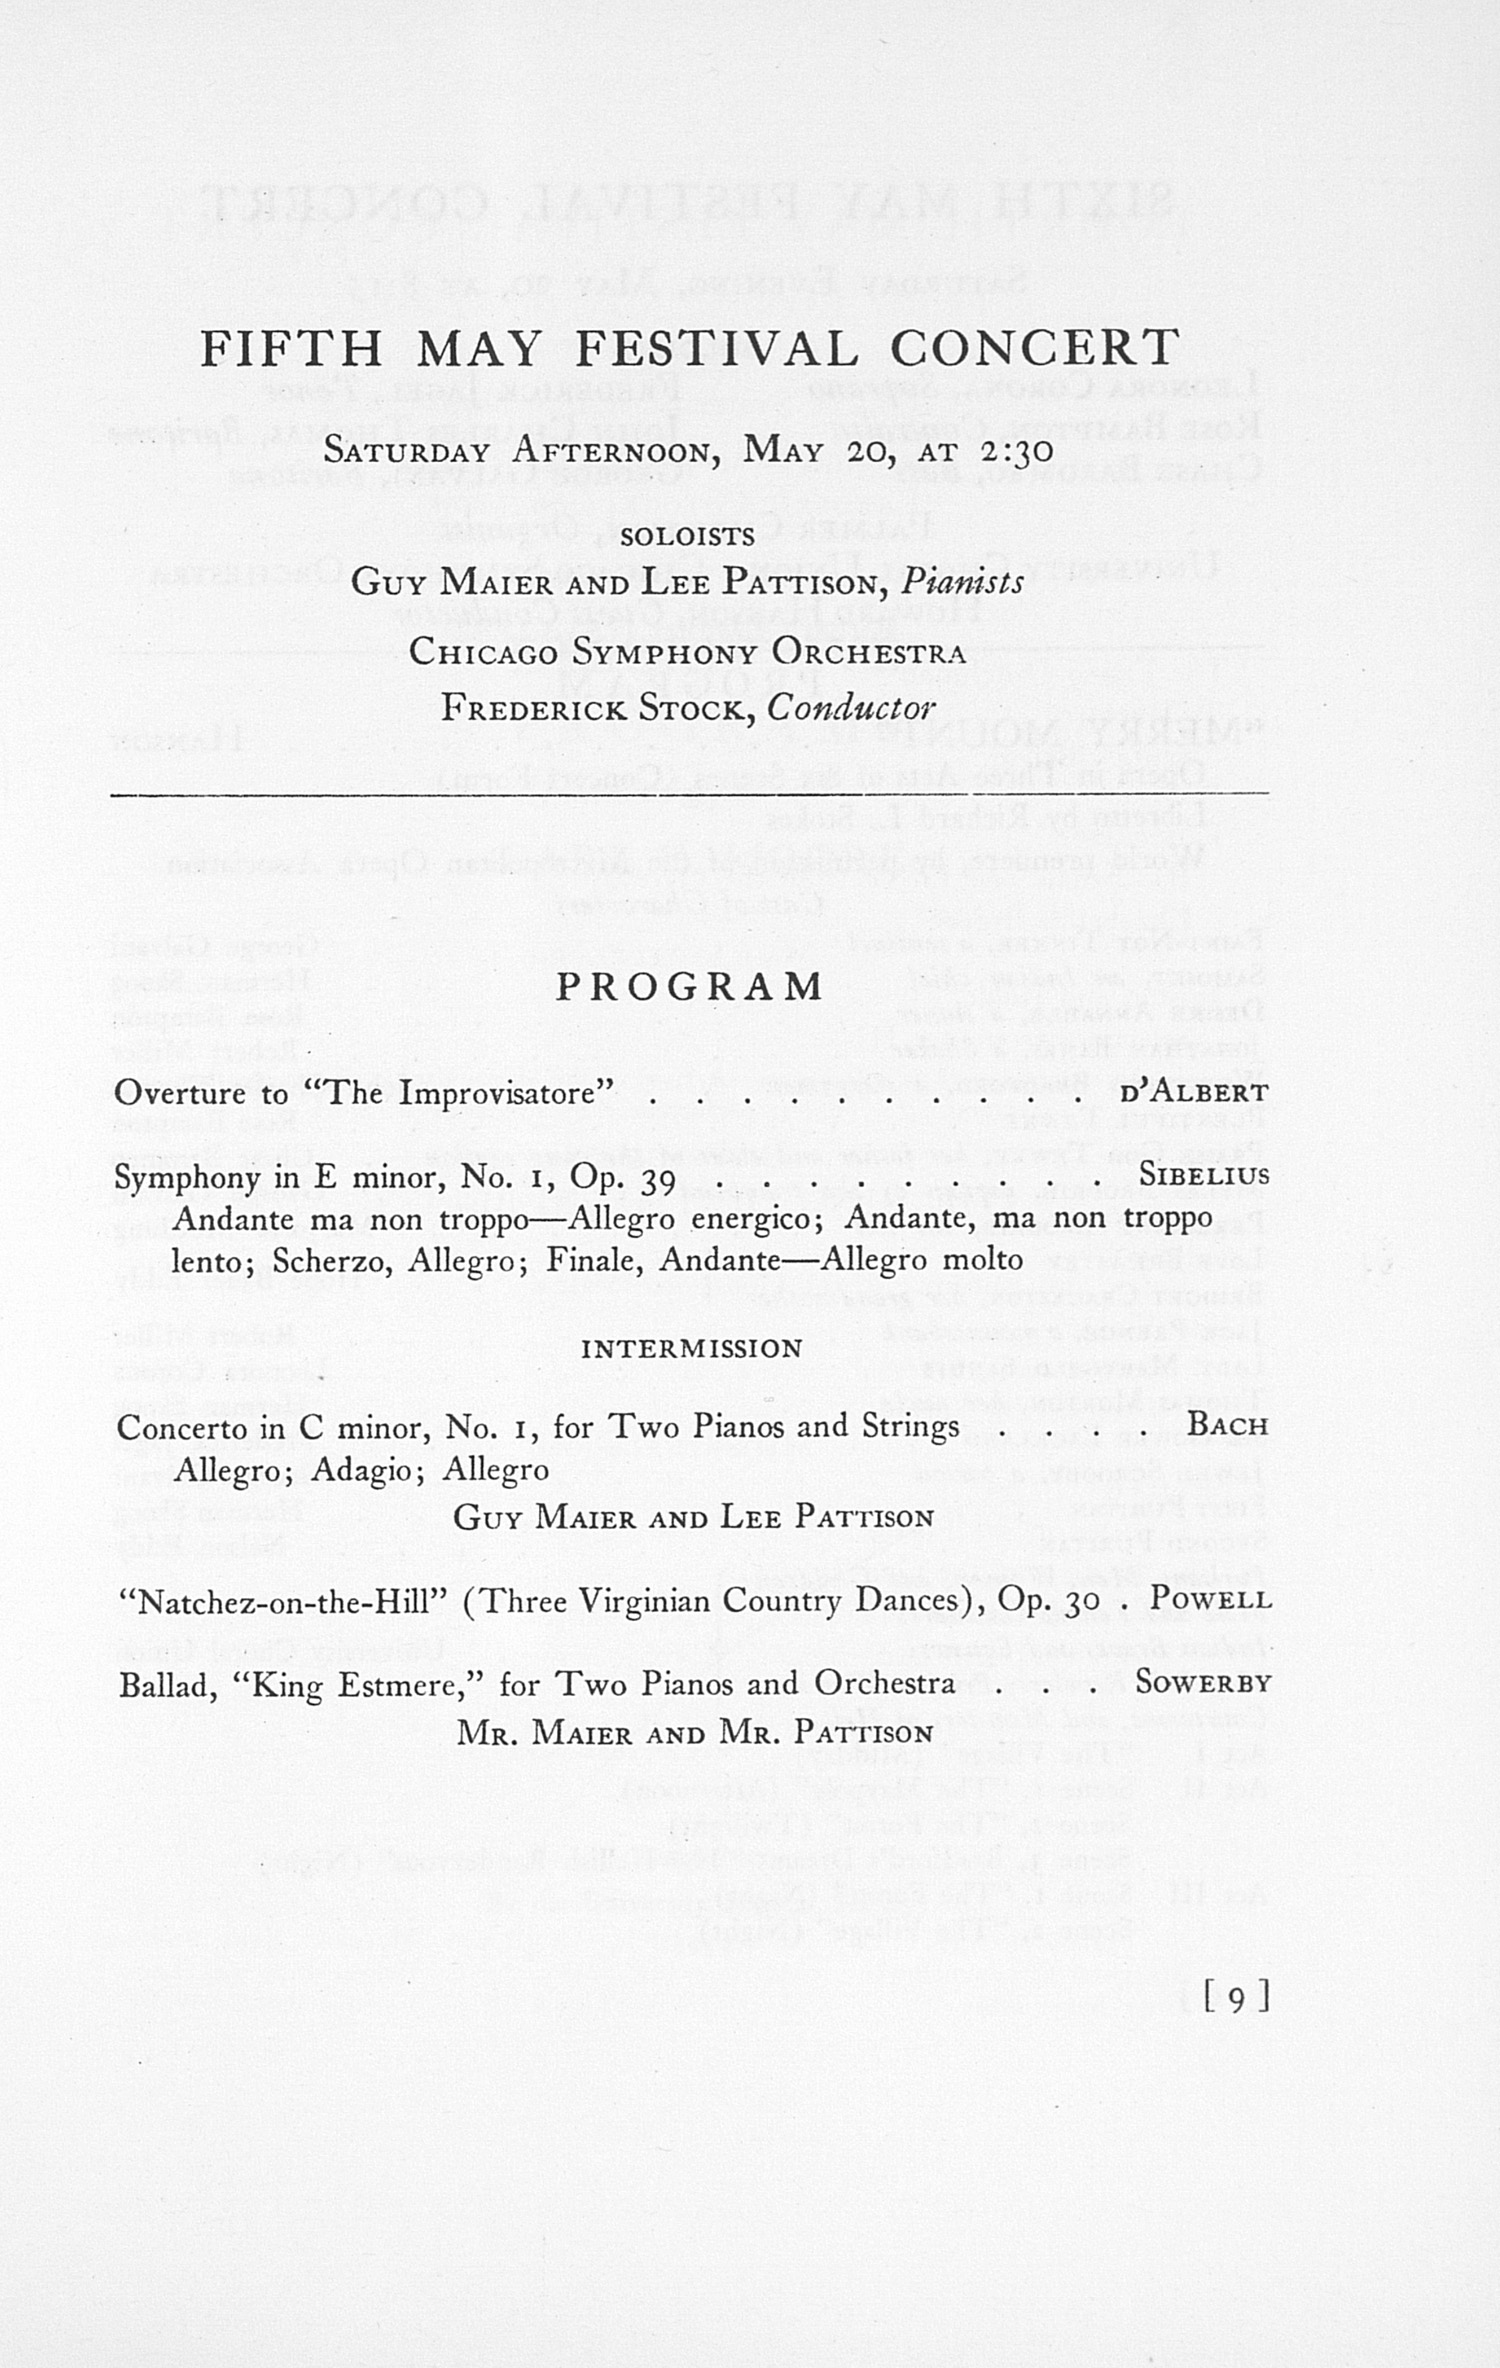 UMS Concert Program, May 17, 18, 19, And 20, 1933: The Fortieth Annual May Festival --  image